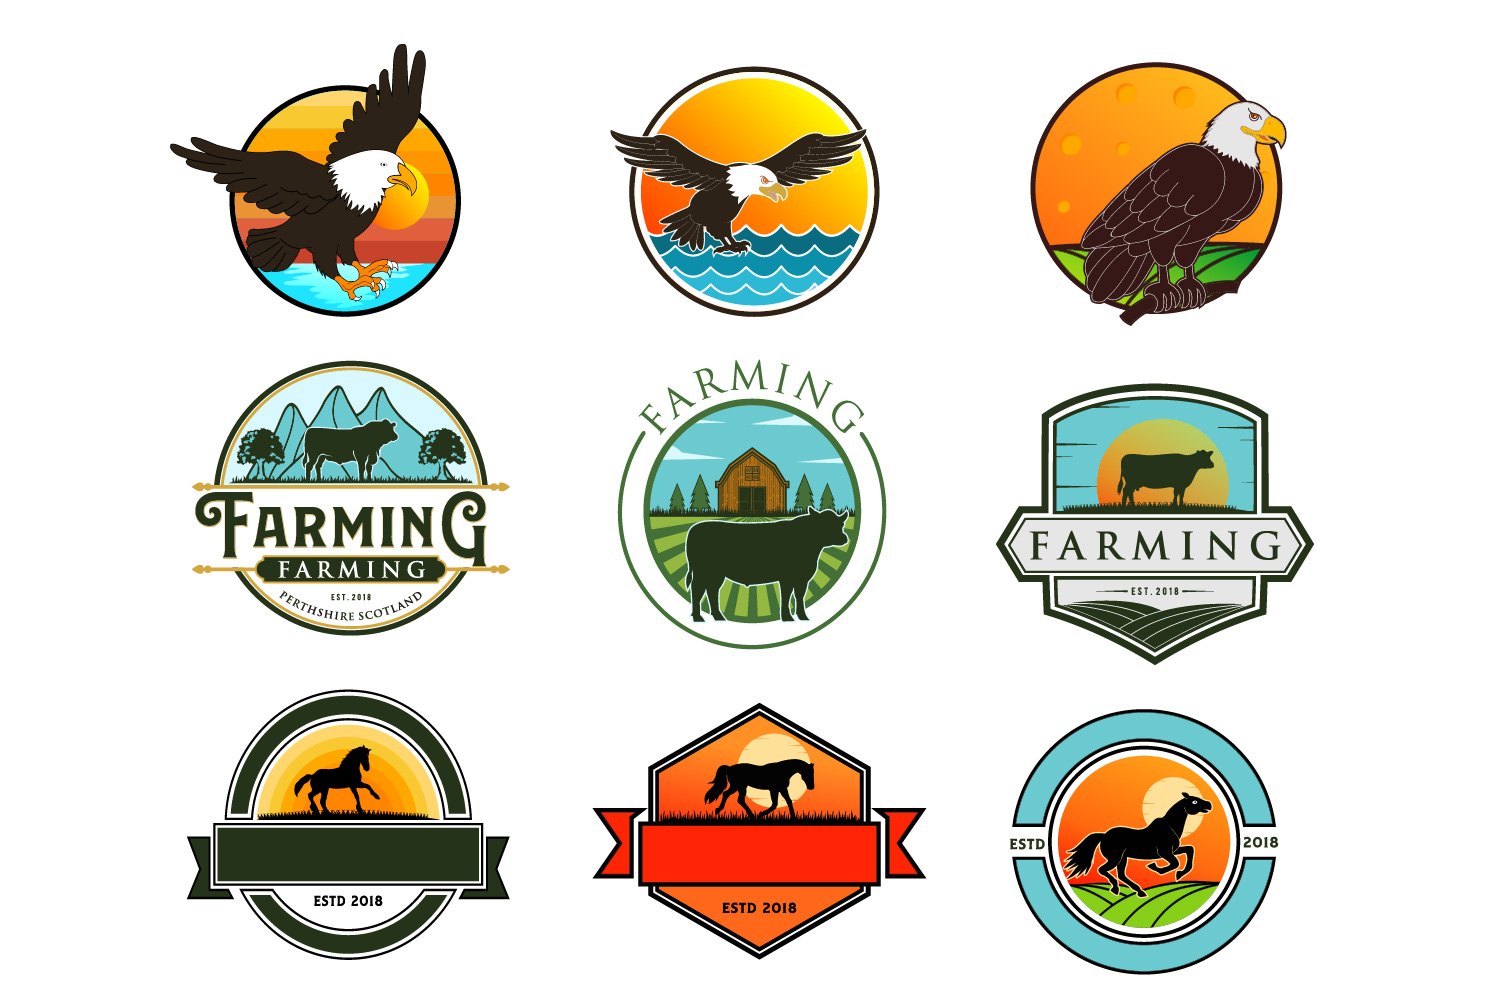 Download Free Cow Horse Eagle Logos Graphic By Graphicrun123 Creative Fabrica for Cricut Explore, Silhouette and other cutting machines.